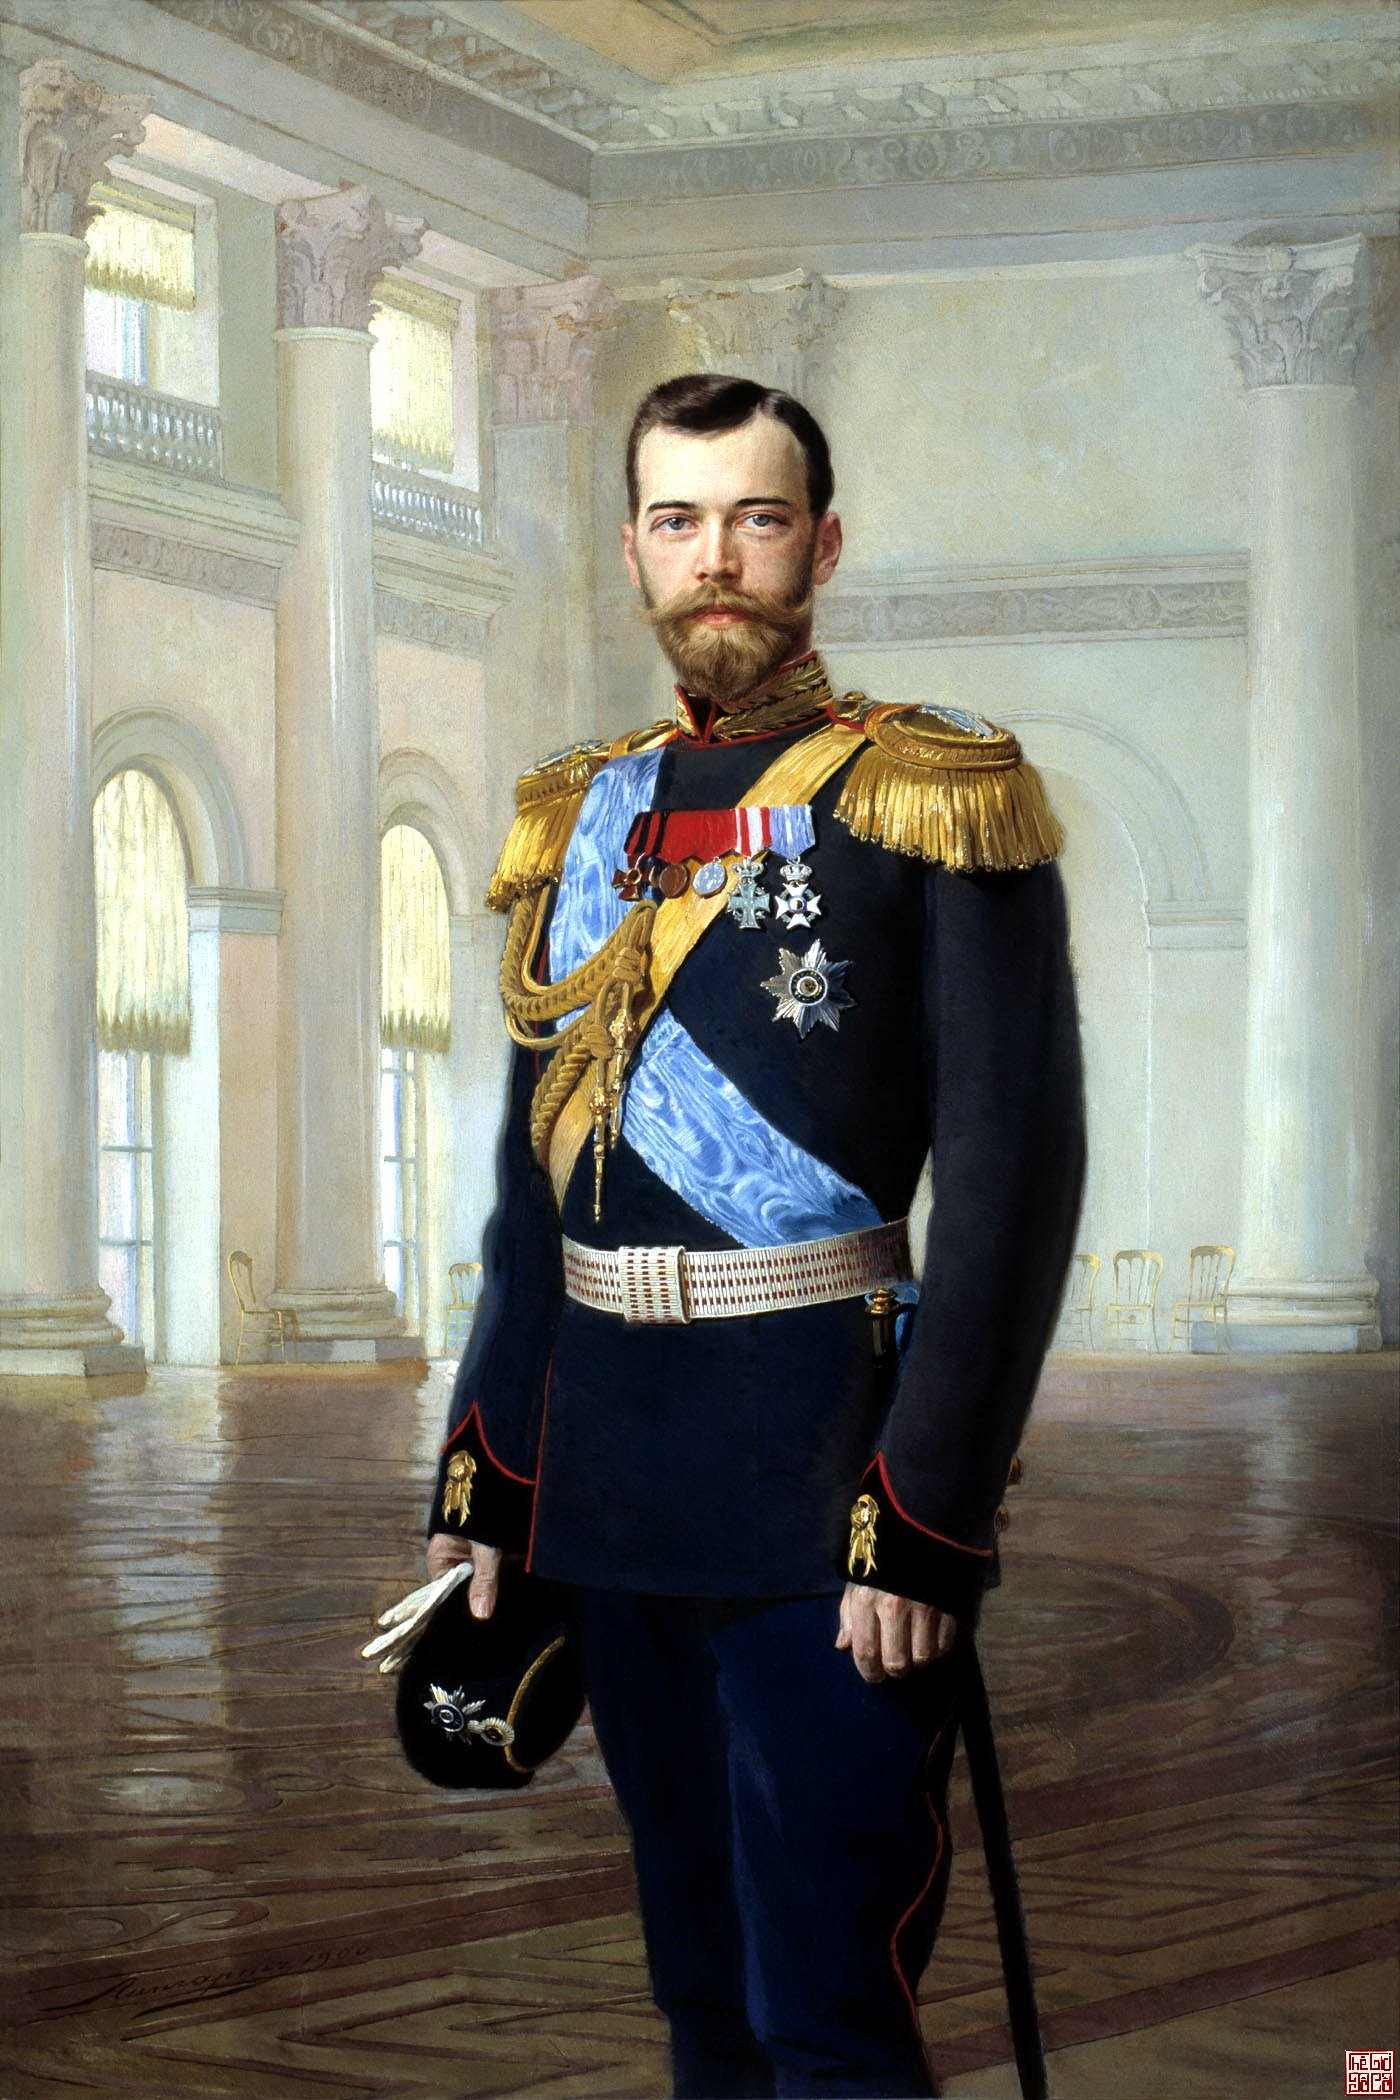 Nicholas_II_of_Russia_painted_by_Earnest_Lipgart.jpg